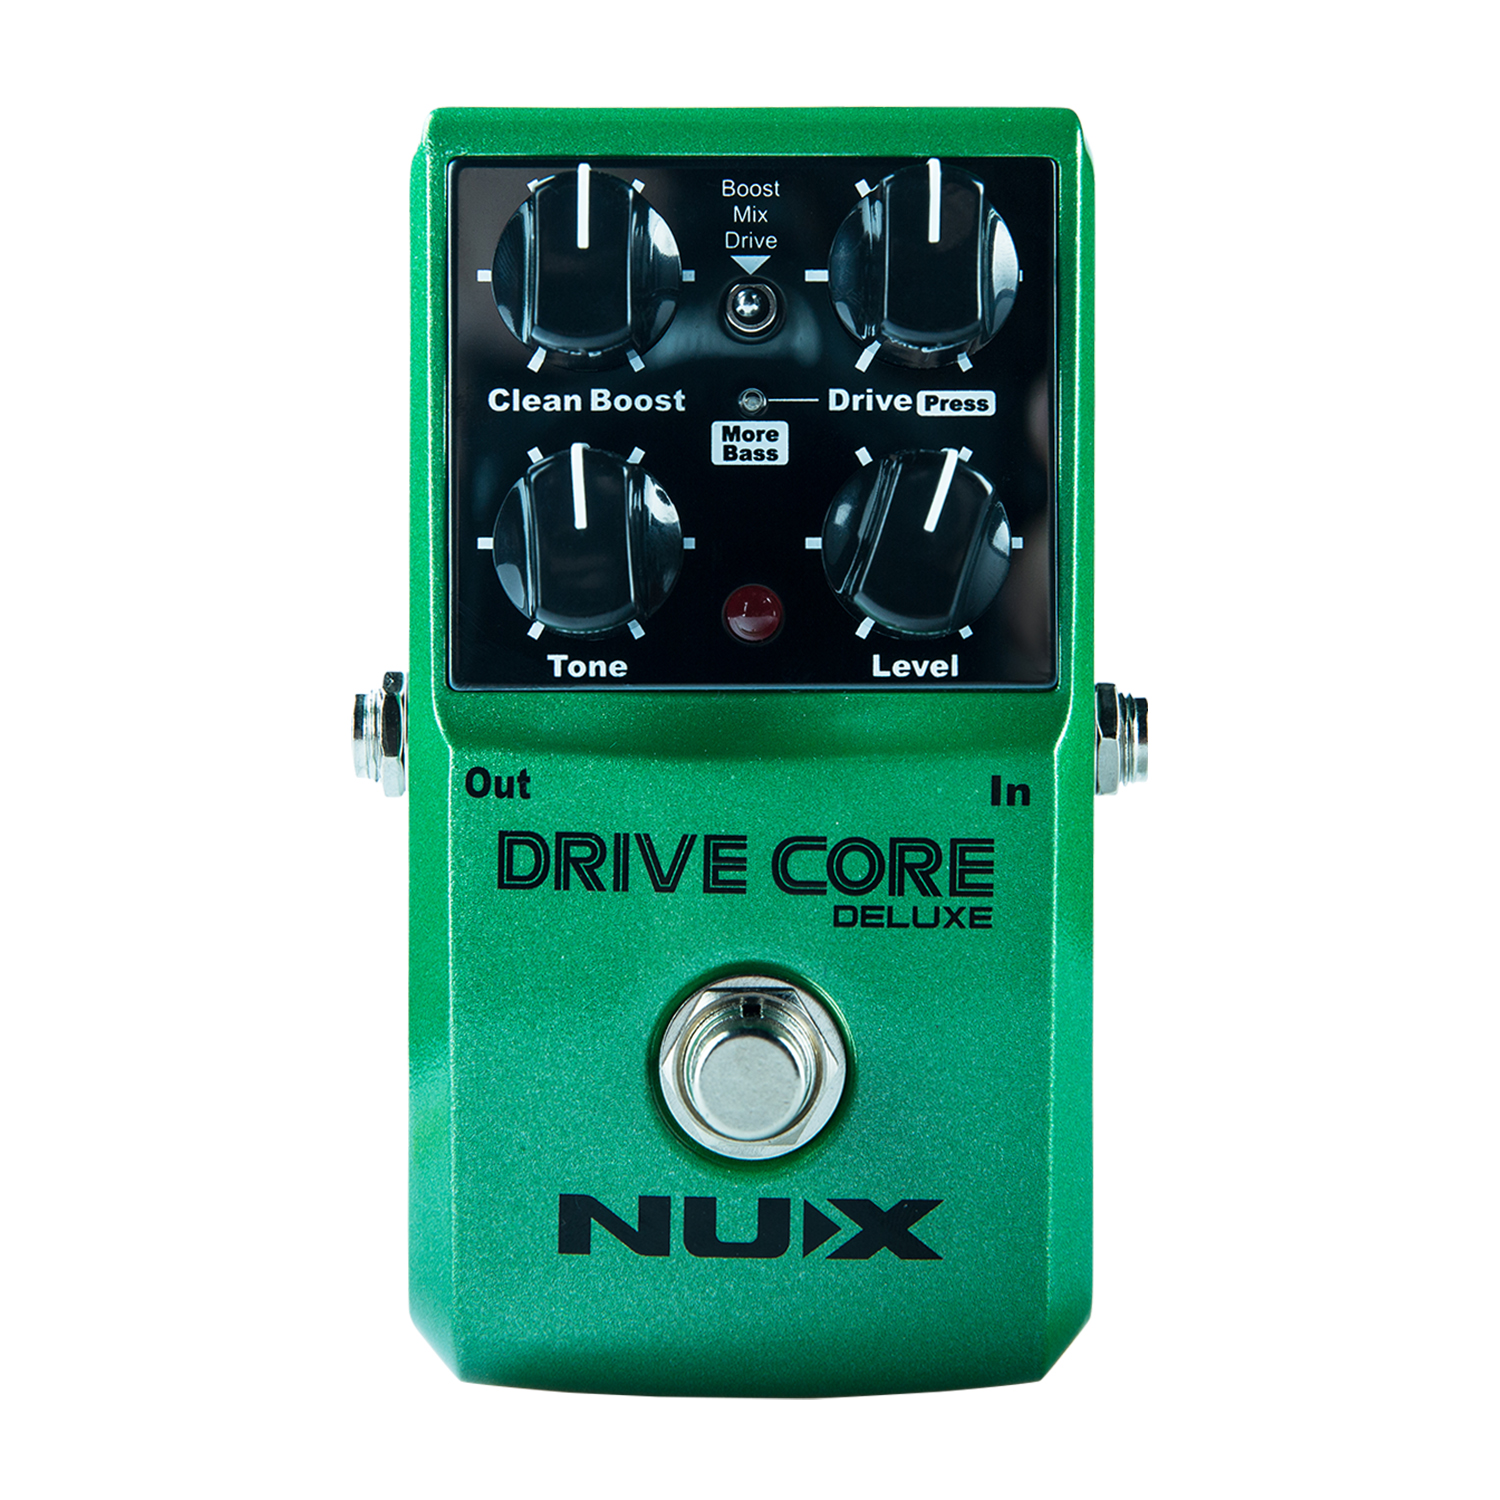 nux drive core deluxe guitar effect pedal best fully functioned drive pedal 3 modes booster. Black Bedroom Furniture Sets. Home Design Ideas